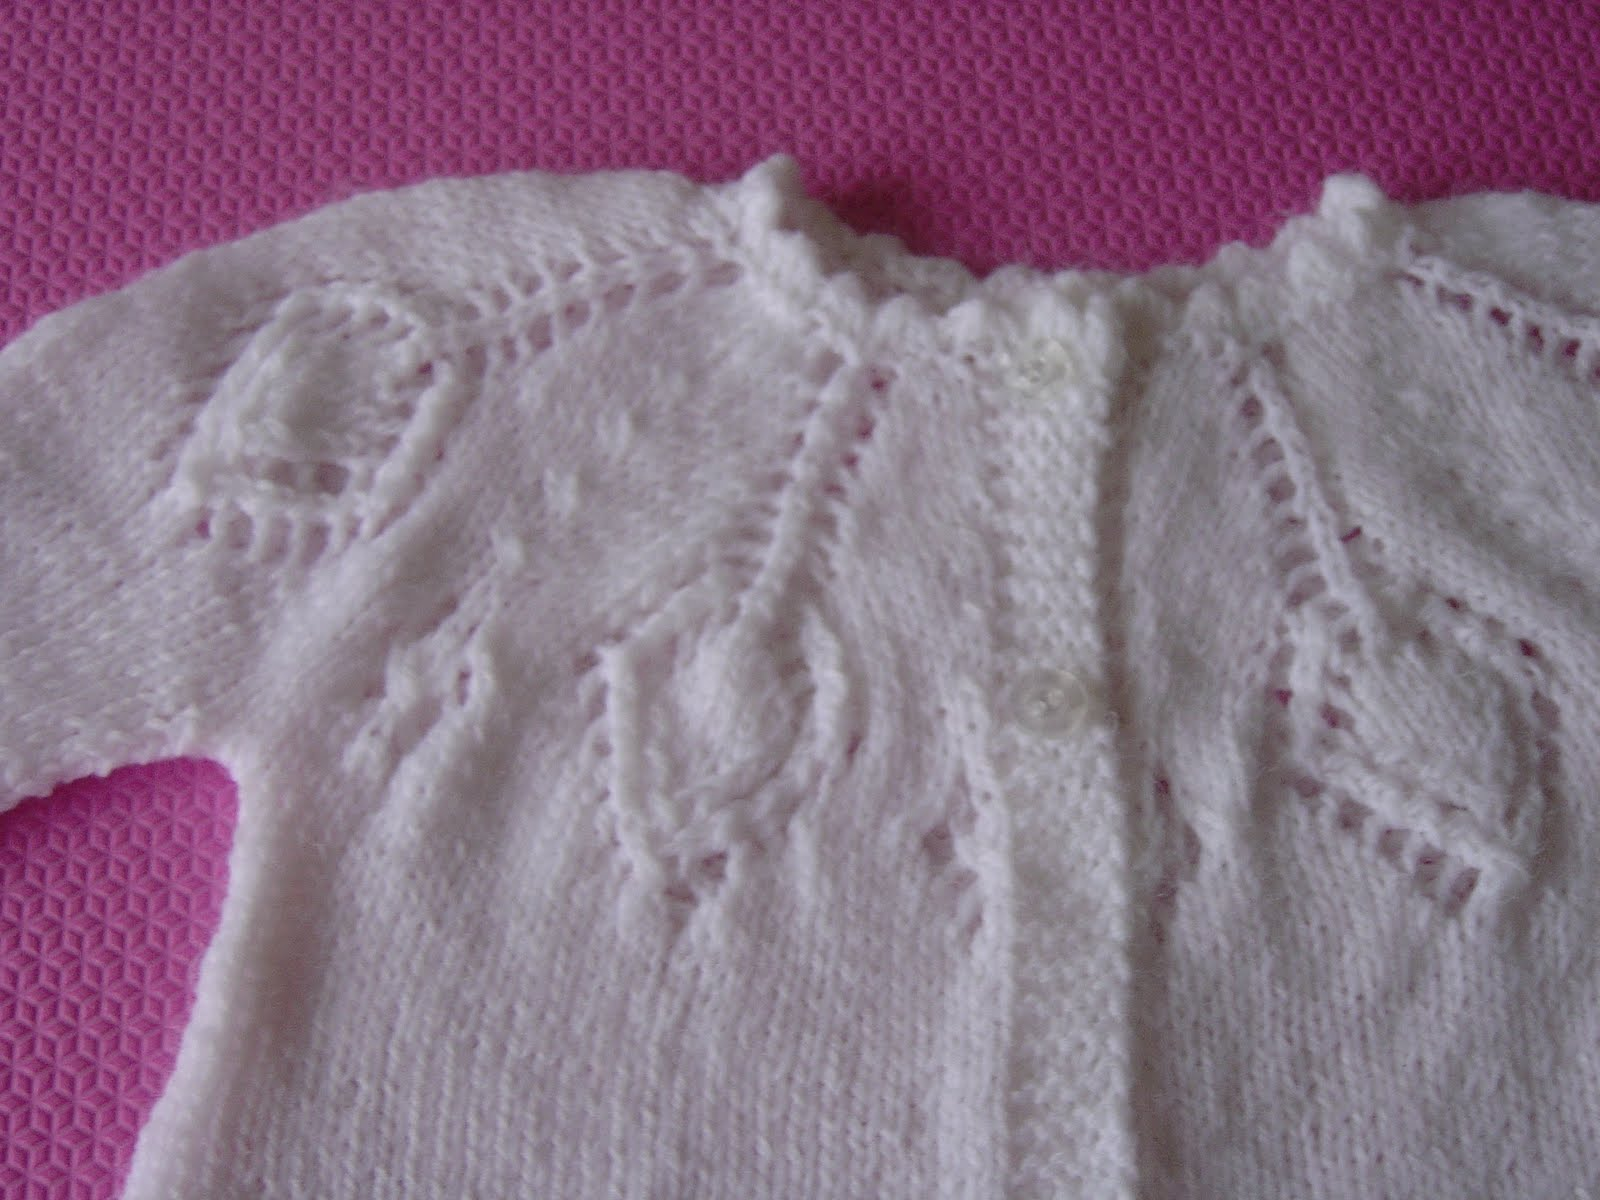 Knitting Patterns Free Baby : Free Baby Cardigan Knitting Patterns   Catalog of Patterns